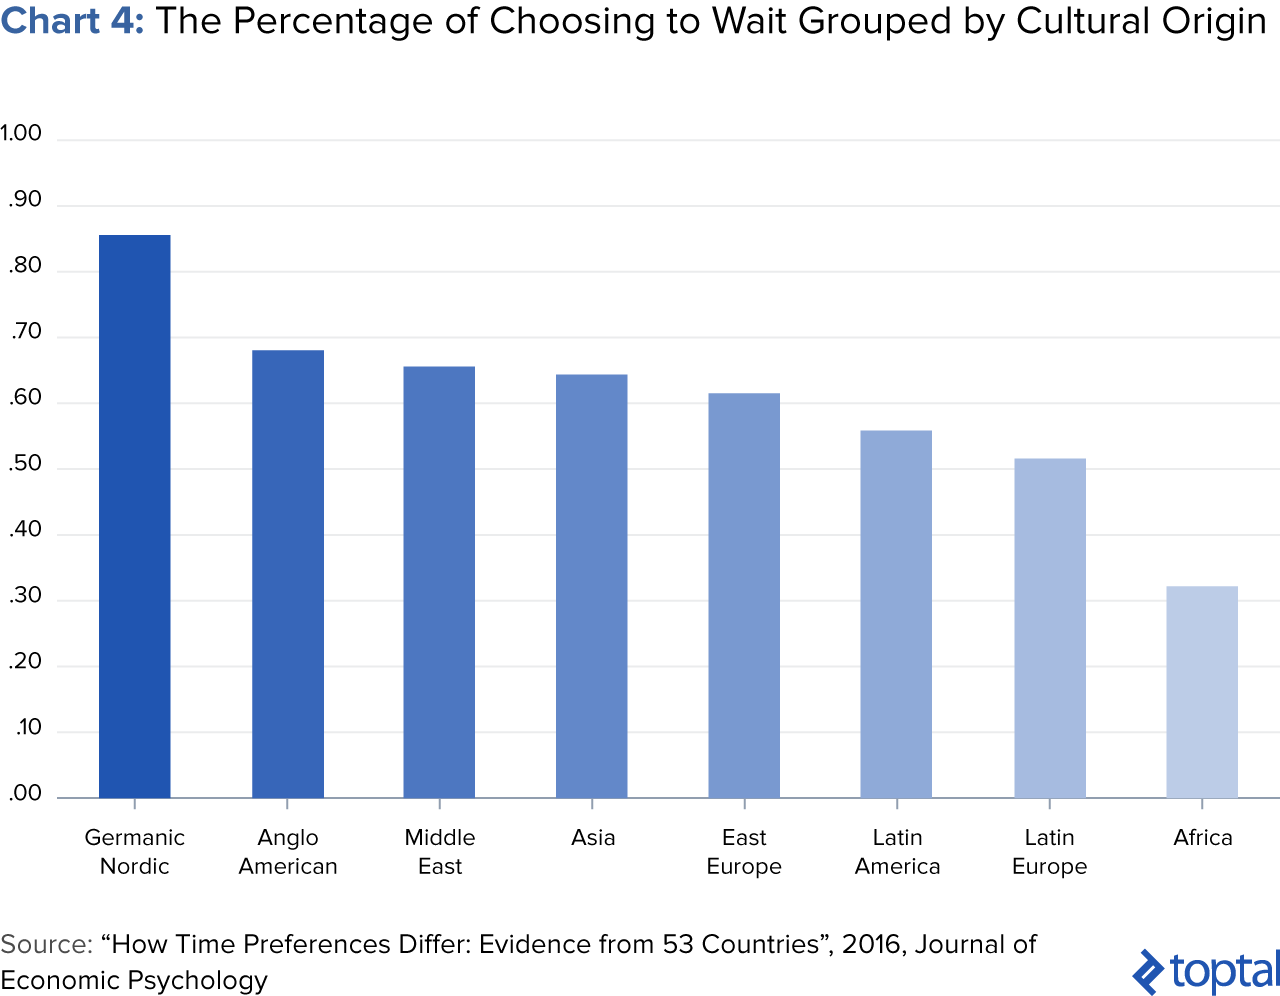 Chart 4: The Percentage of Choosing to Wait Grouped by Cultural Origin